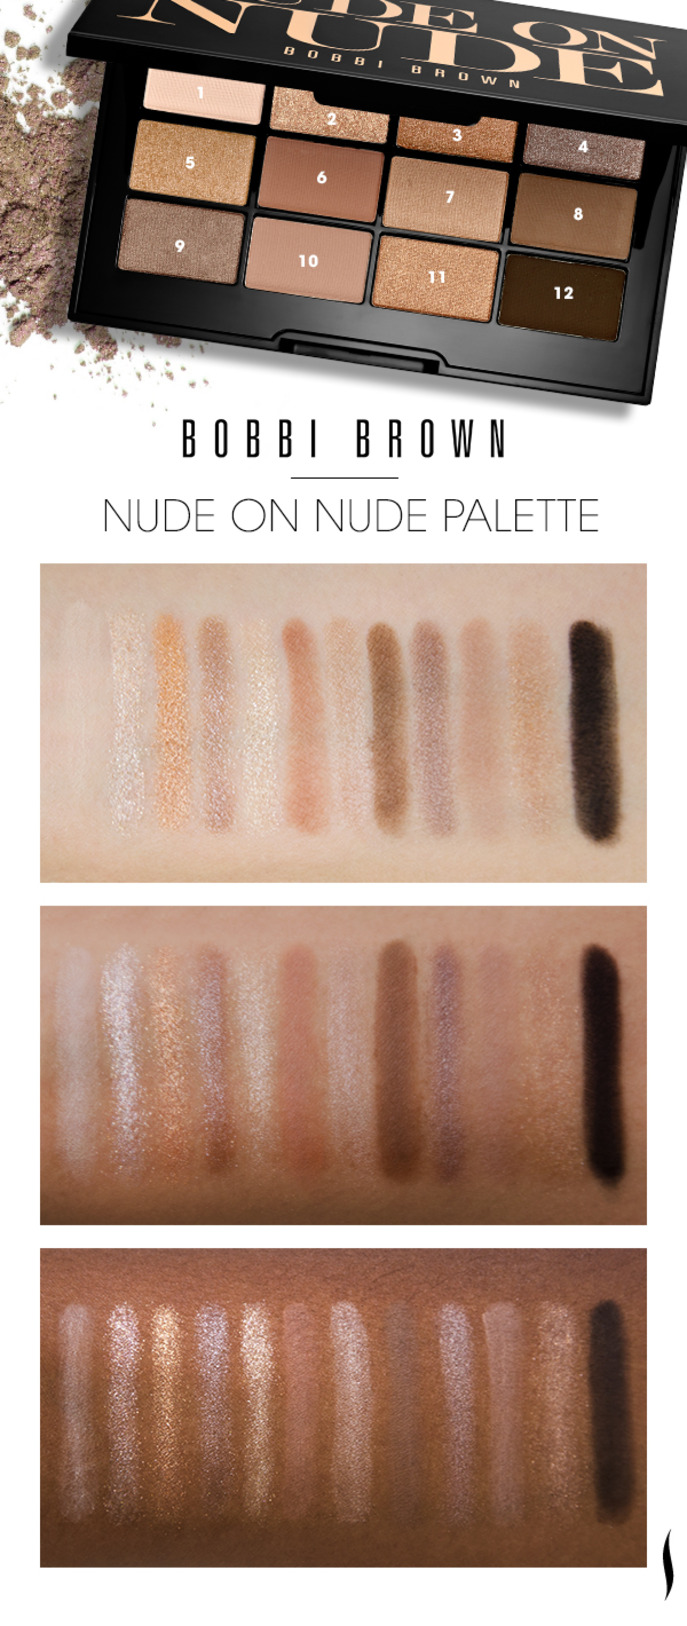 IT'S RUDE TO NOT BE NUDE